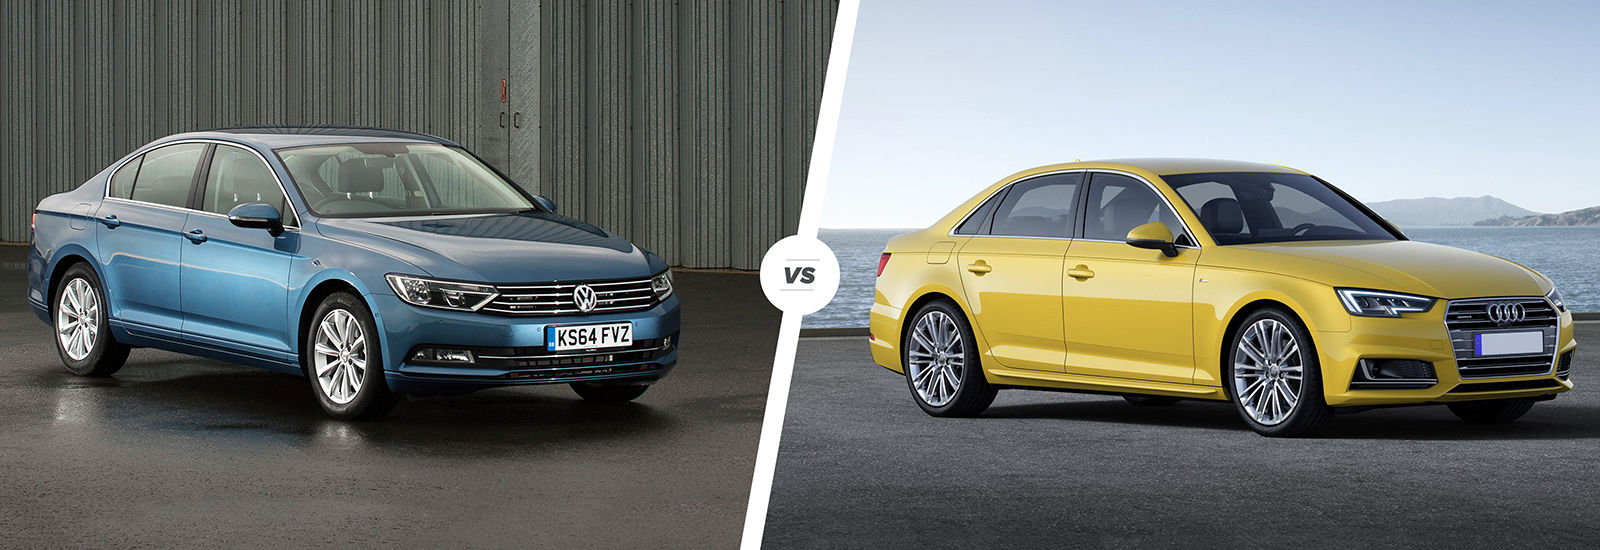 Audi A3 Vs A4 >> VW Passat vs Audi A4 – which is best? | carwow